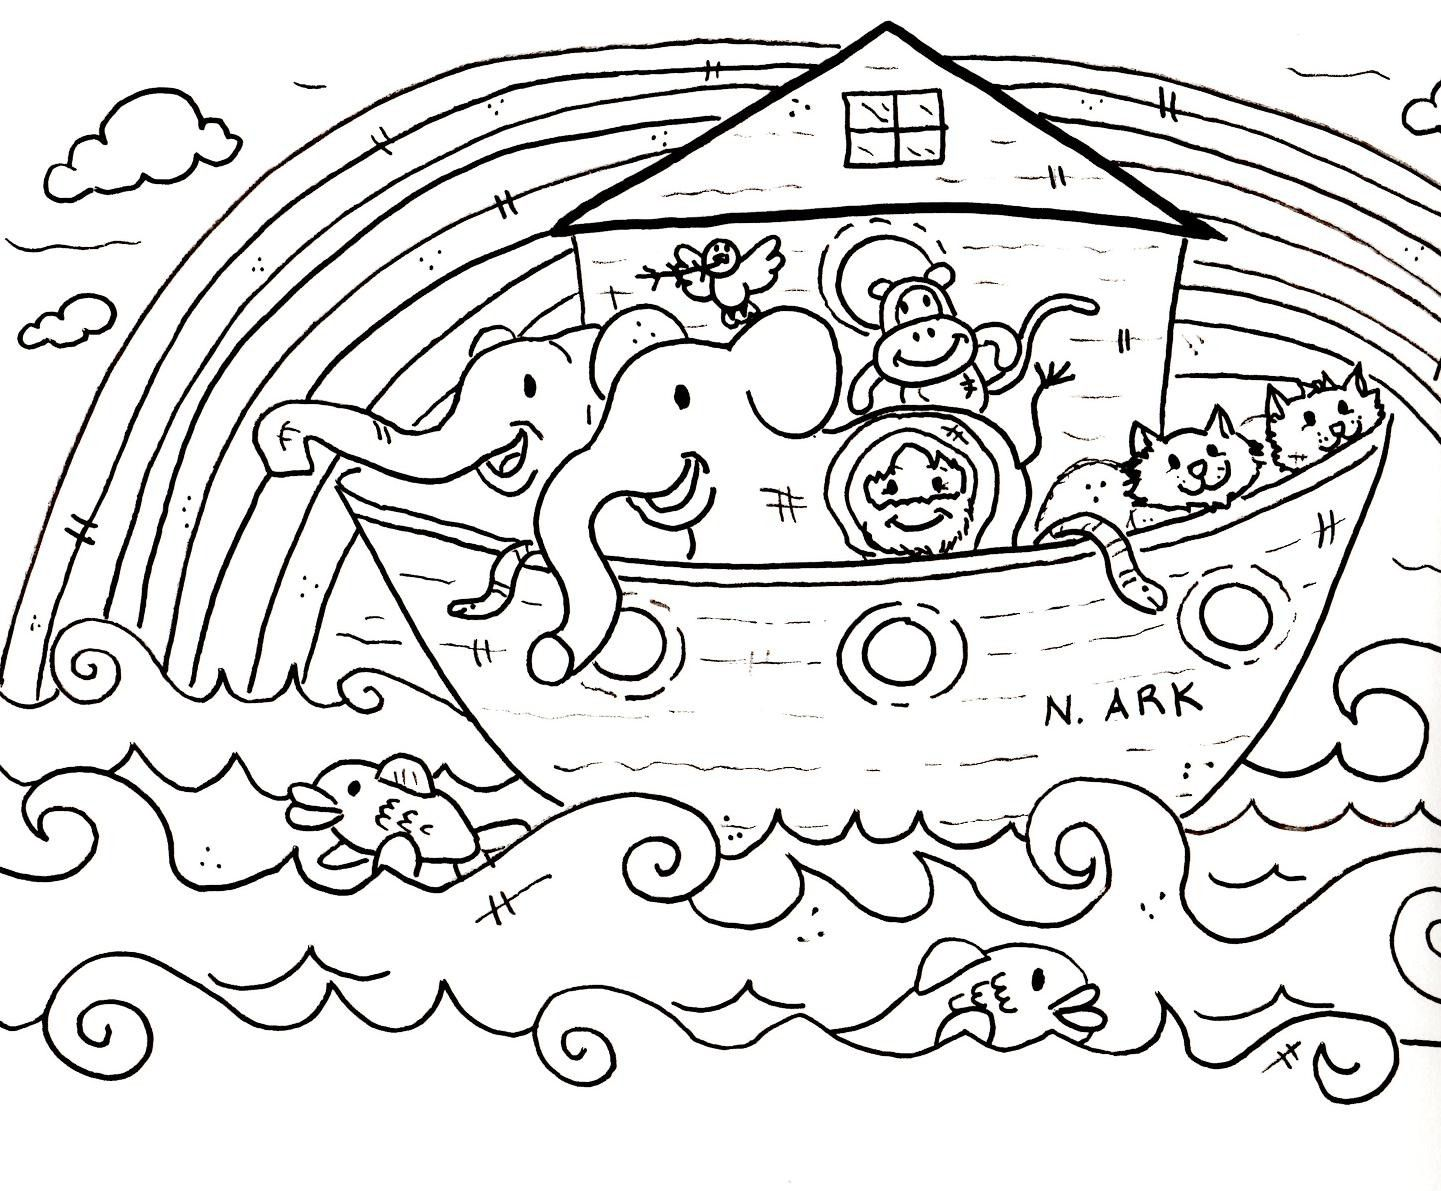 25 Inspiration Photo Of Bible Story Coloring Pages Entitlementtrap Com Bible Coloring Pages Sunday School Coloring Pages Bible Coloring